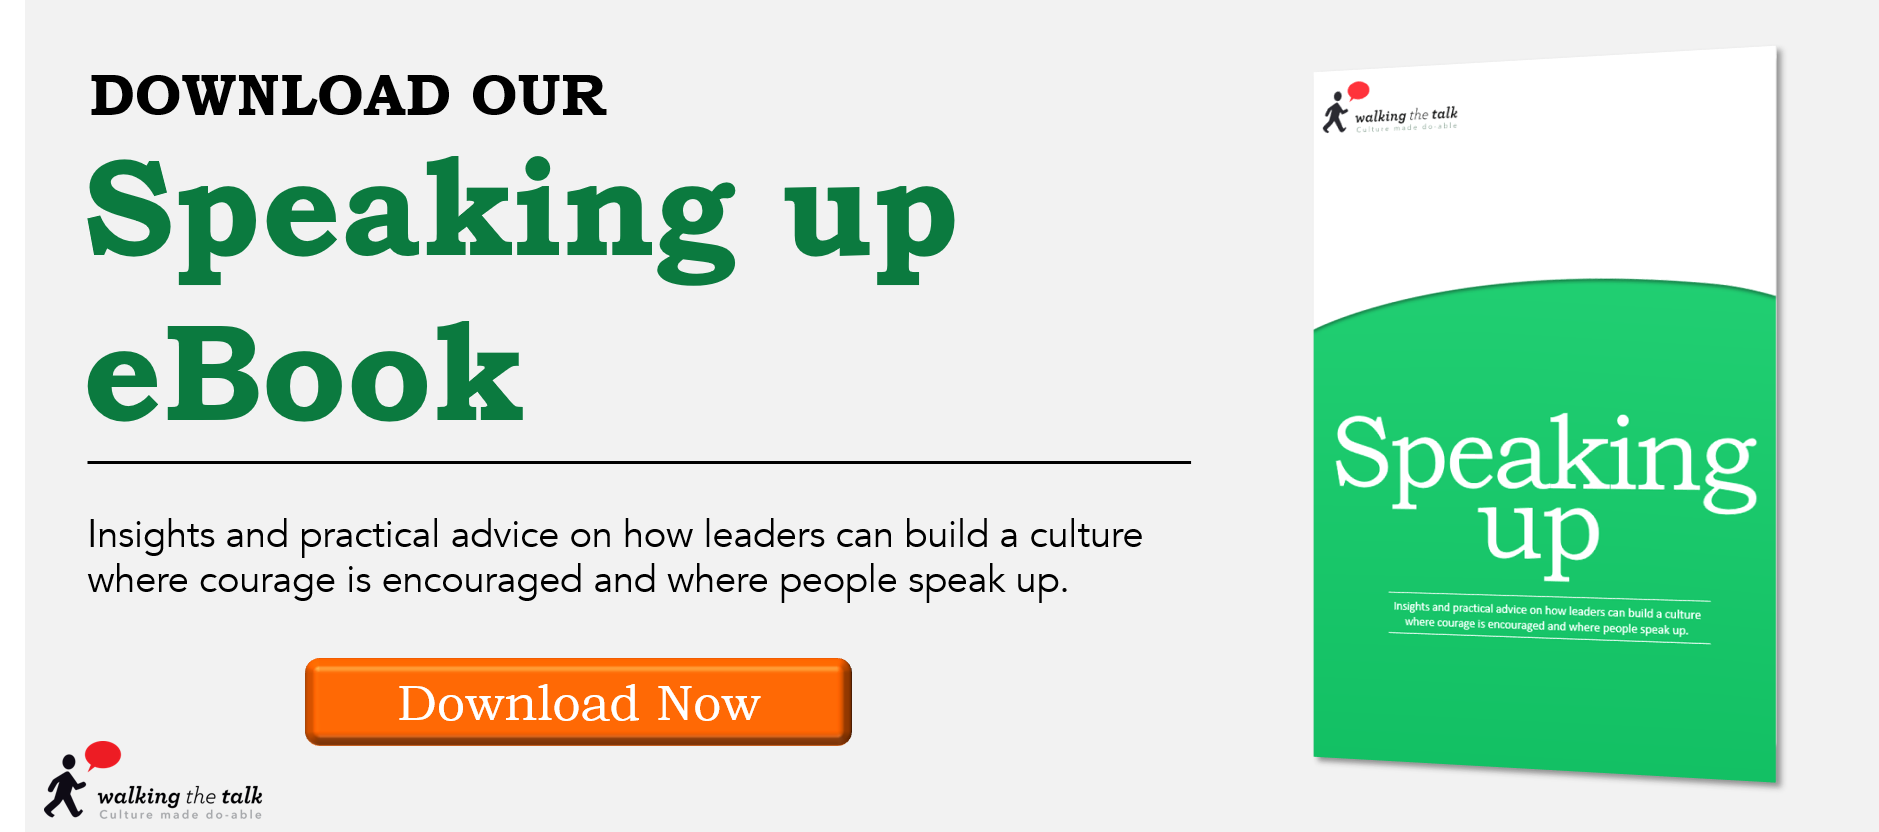 Build a culture where courage is encouraged and where people speak up